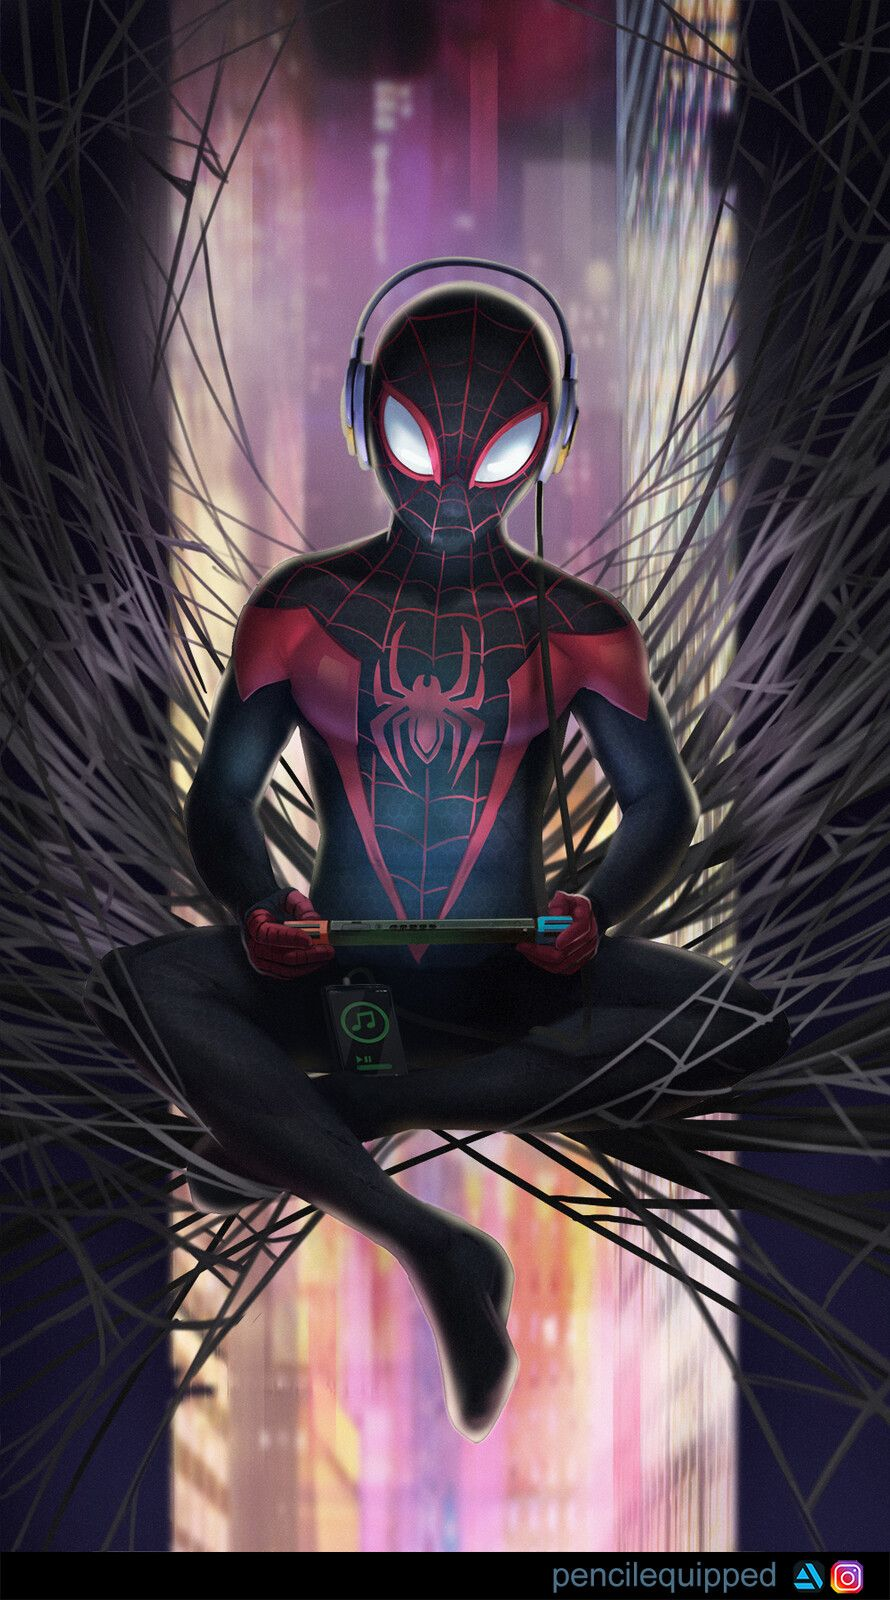 SpiderMan (Miles Morales), Pencil Equipped on ArtStation